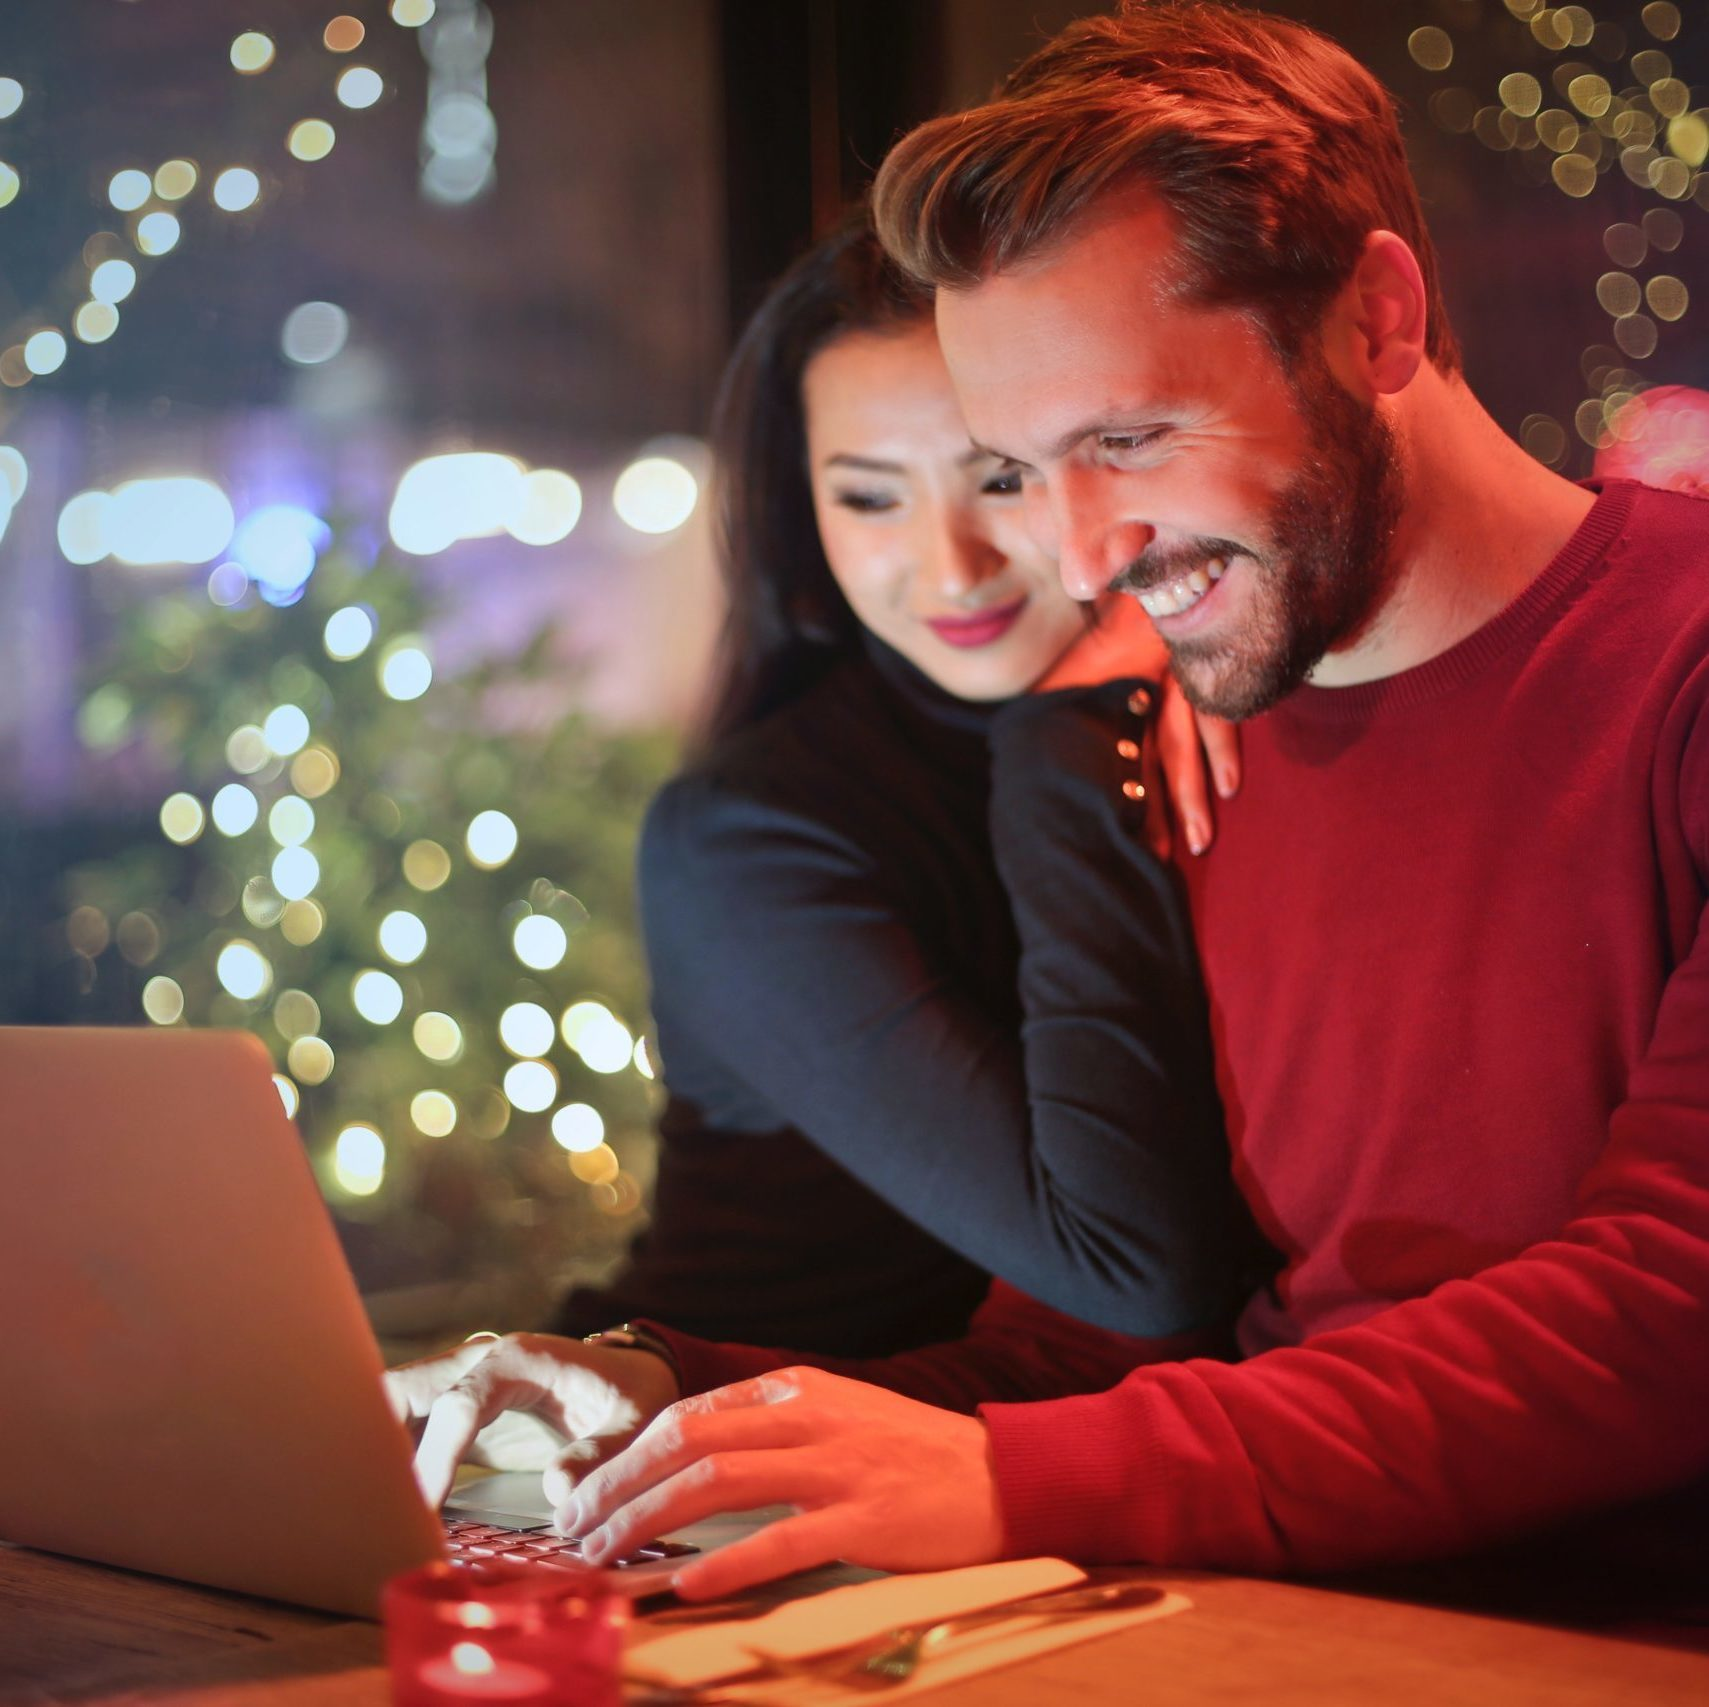 couple smiling at laptop with lights in background